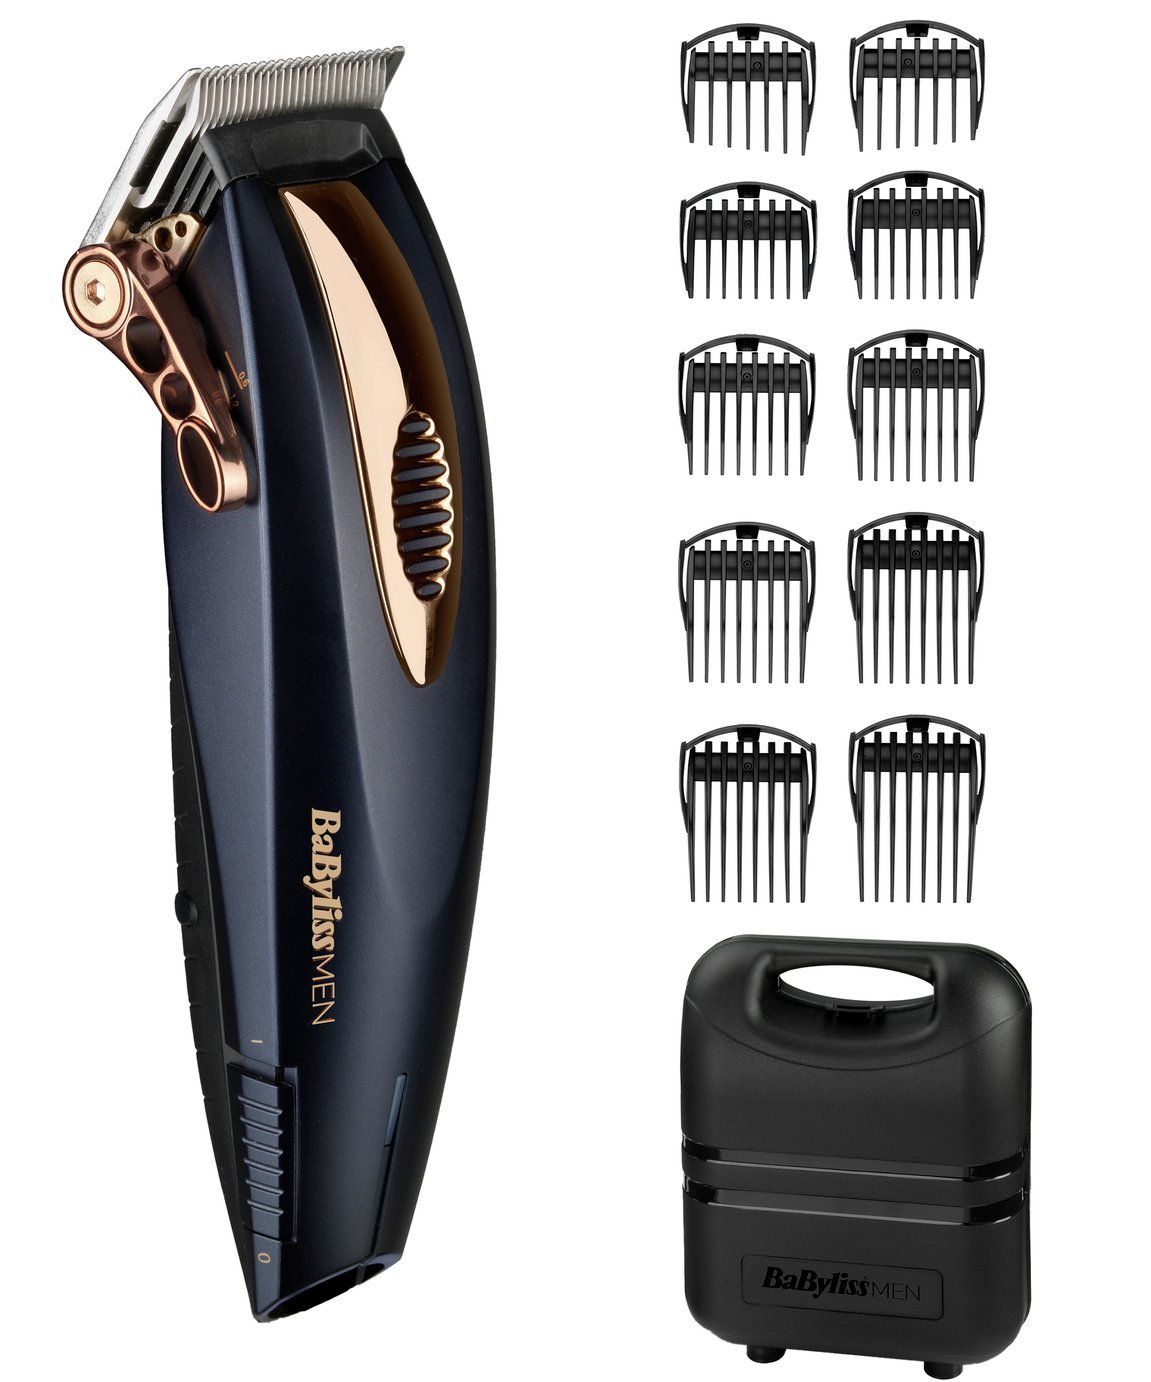 BaByliss Super Clipper XTP Hair Clipper 7475DU